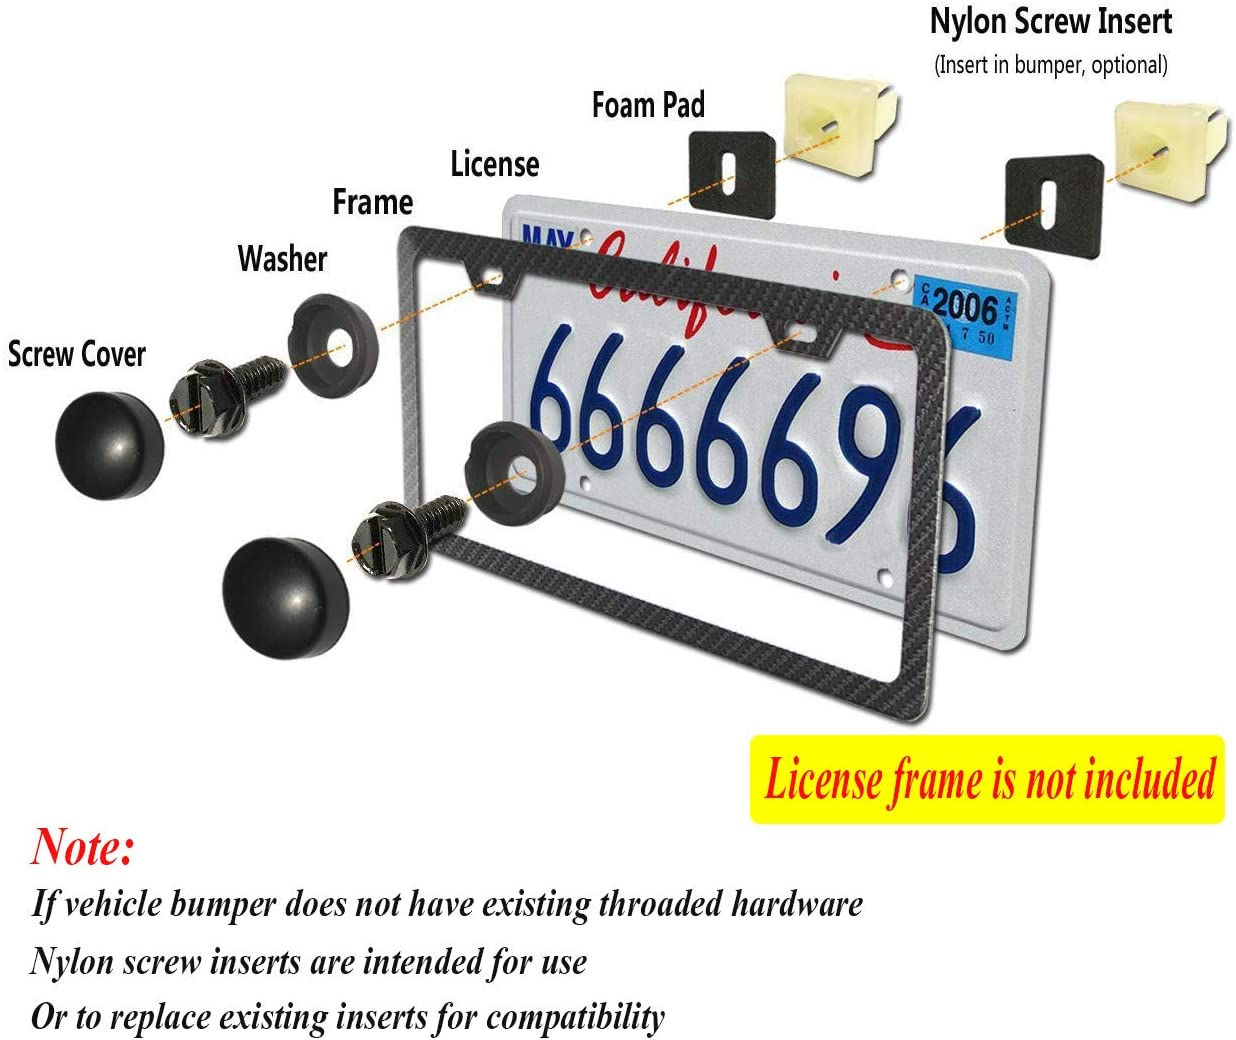 Stainless Steel Screws /& Nylon Screw Inserts /& Black Screw Covers /&Anti-Rattle Pads and Slotted Screwdriver for Fastening License Plates Frames and Covers QUNQI STAR License Plate Screws Sets